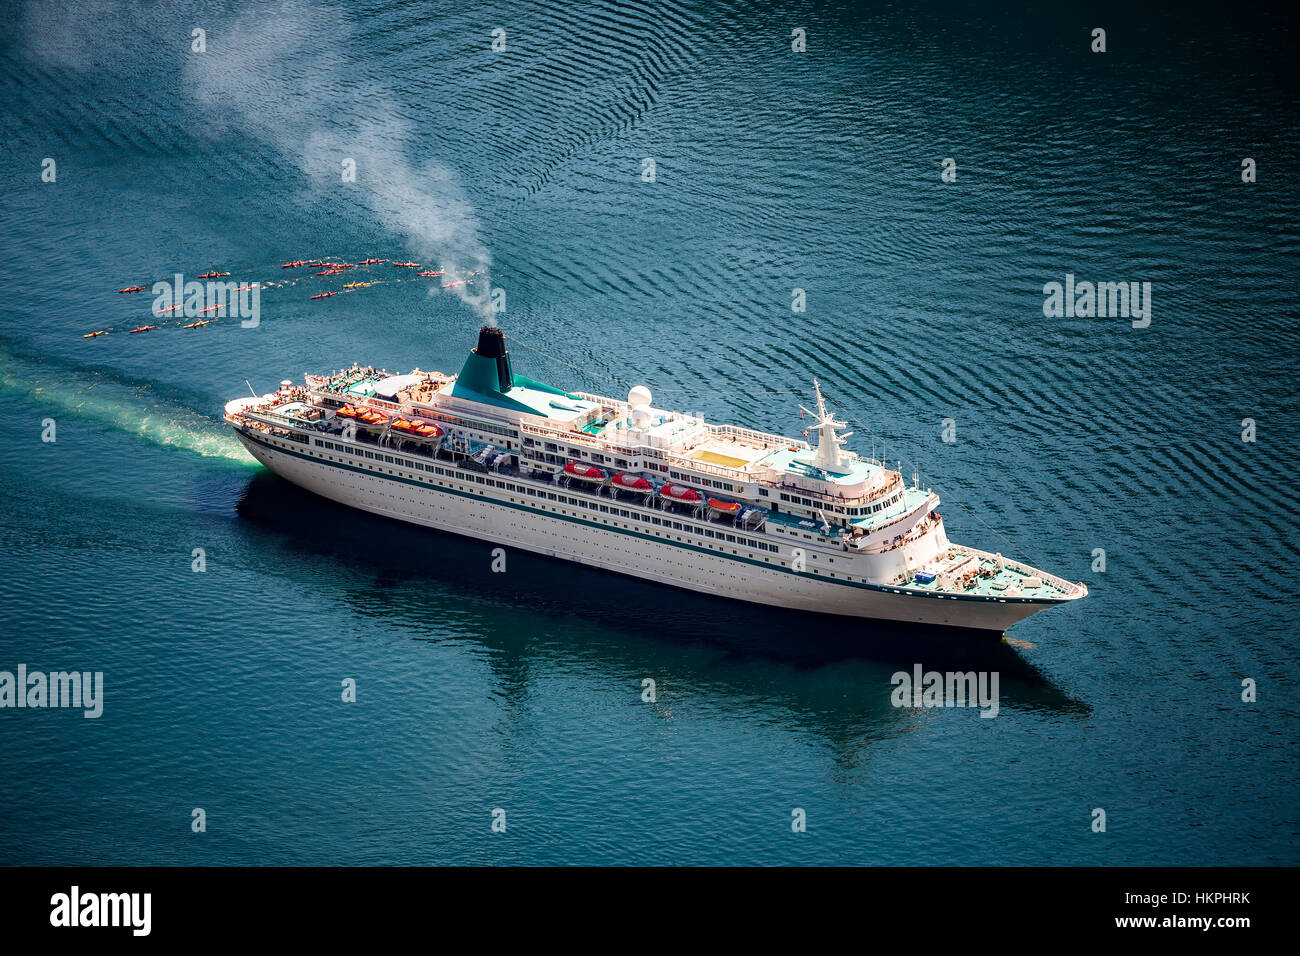 Cruise Ship, Cruise Liners On Geiranger fjord, Norway. Tourism vacation and traveling. - Stock Image